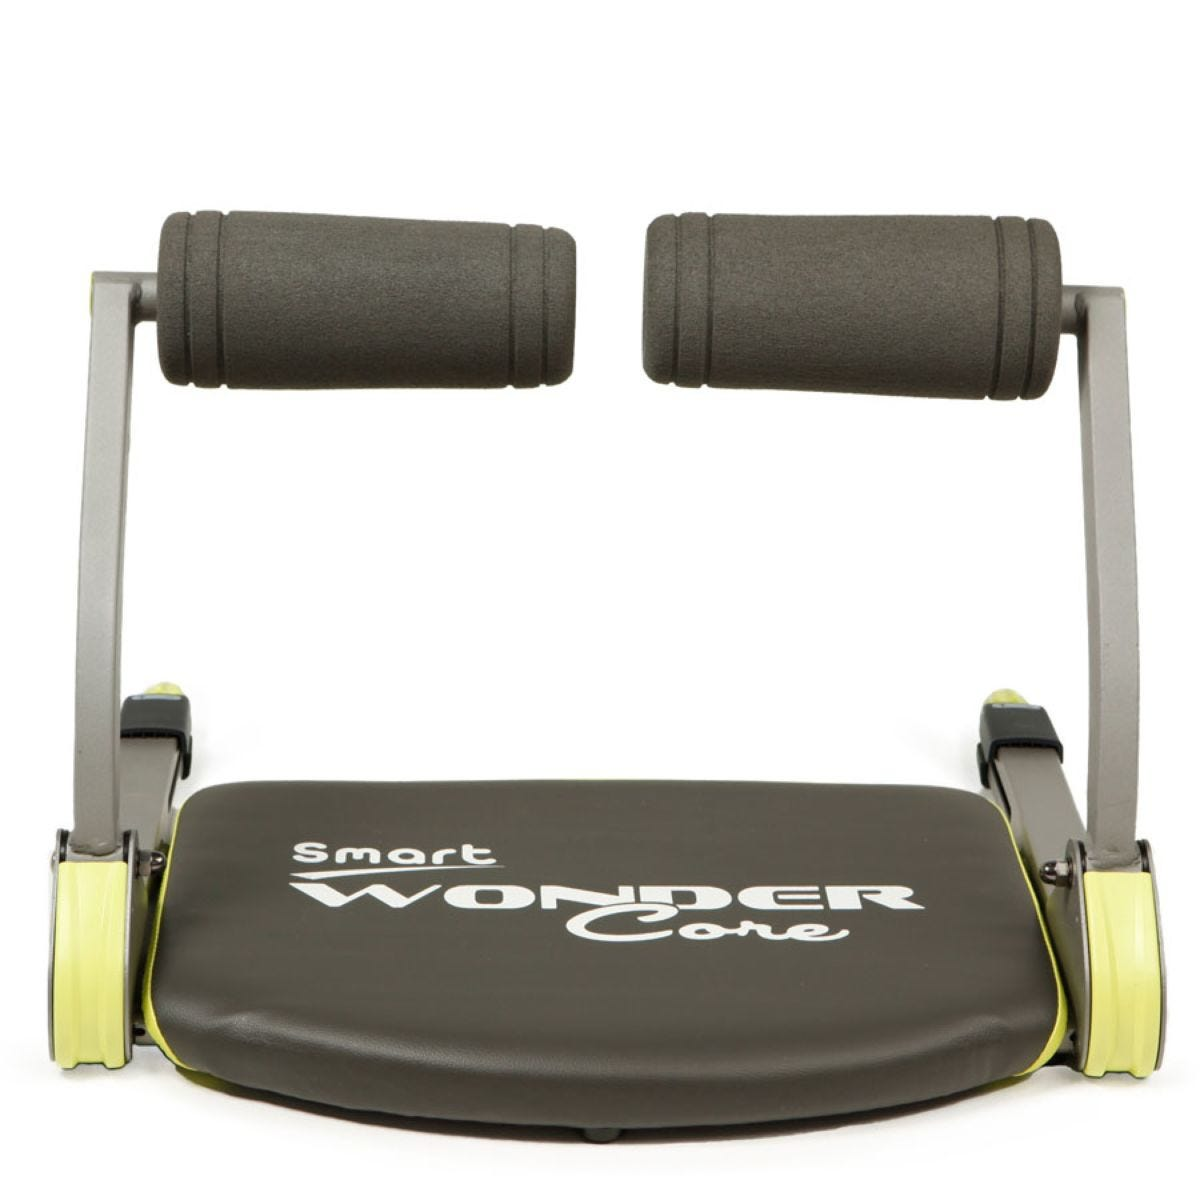 WonderCore Smart Machine Home Fitness Core Body Trainer by Thane